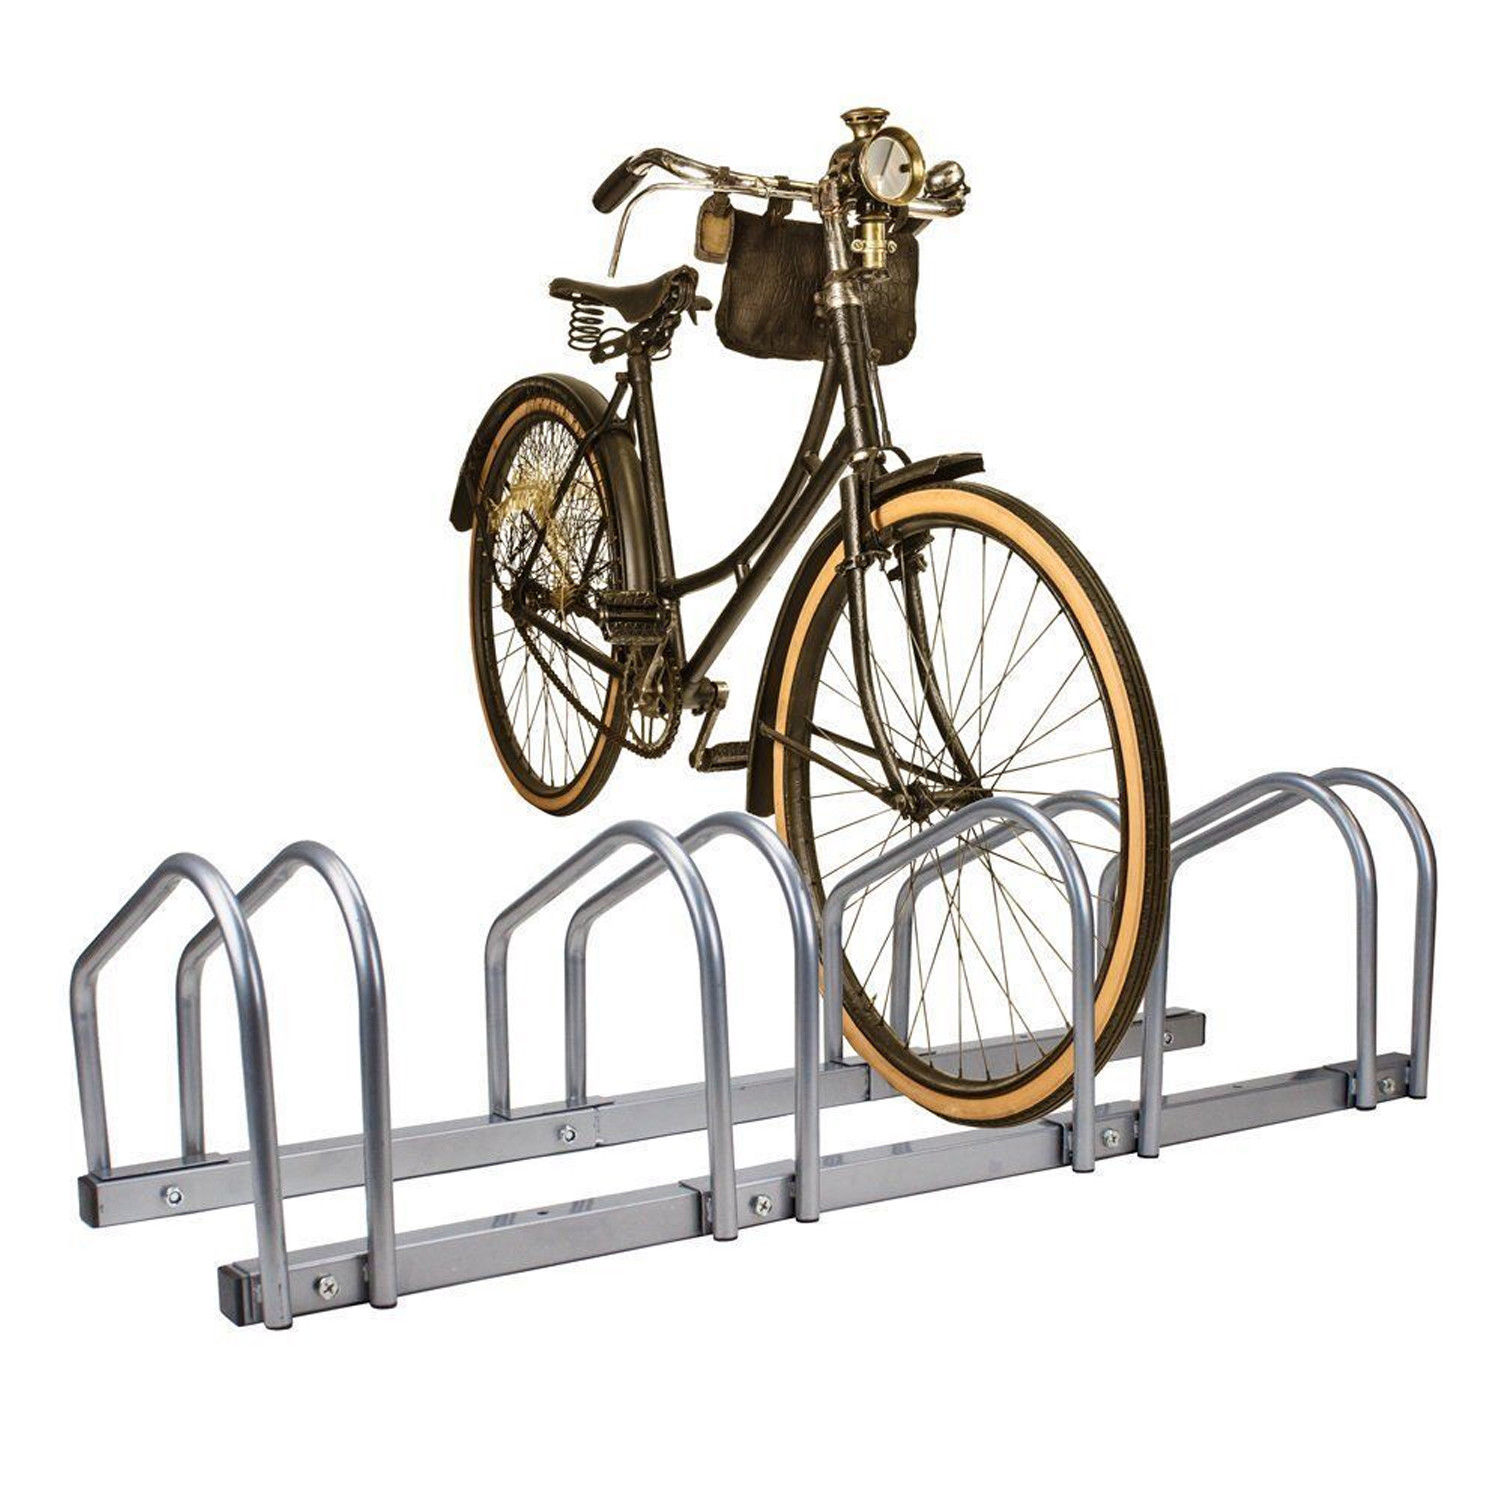 Budget Cycle Rack